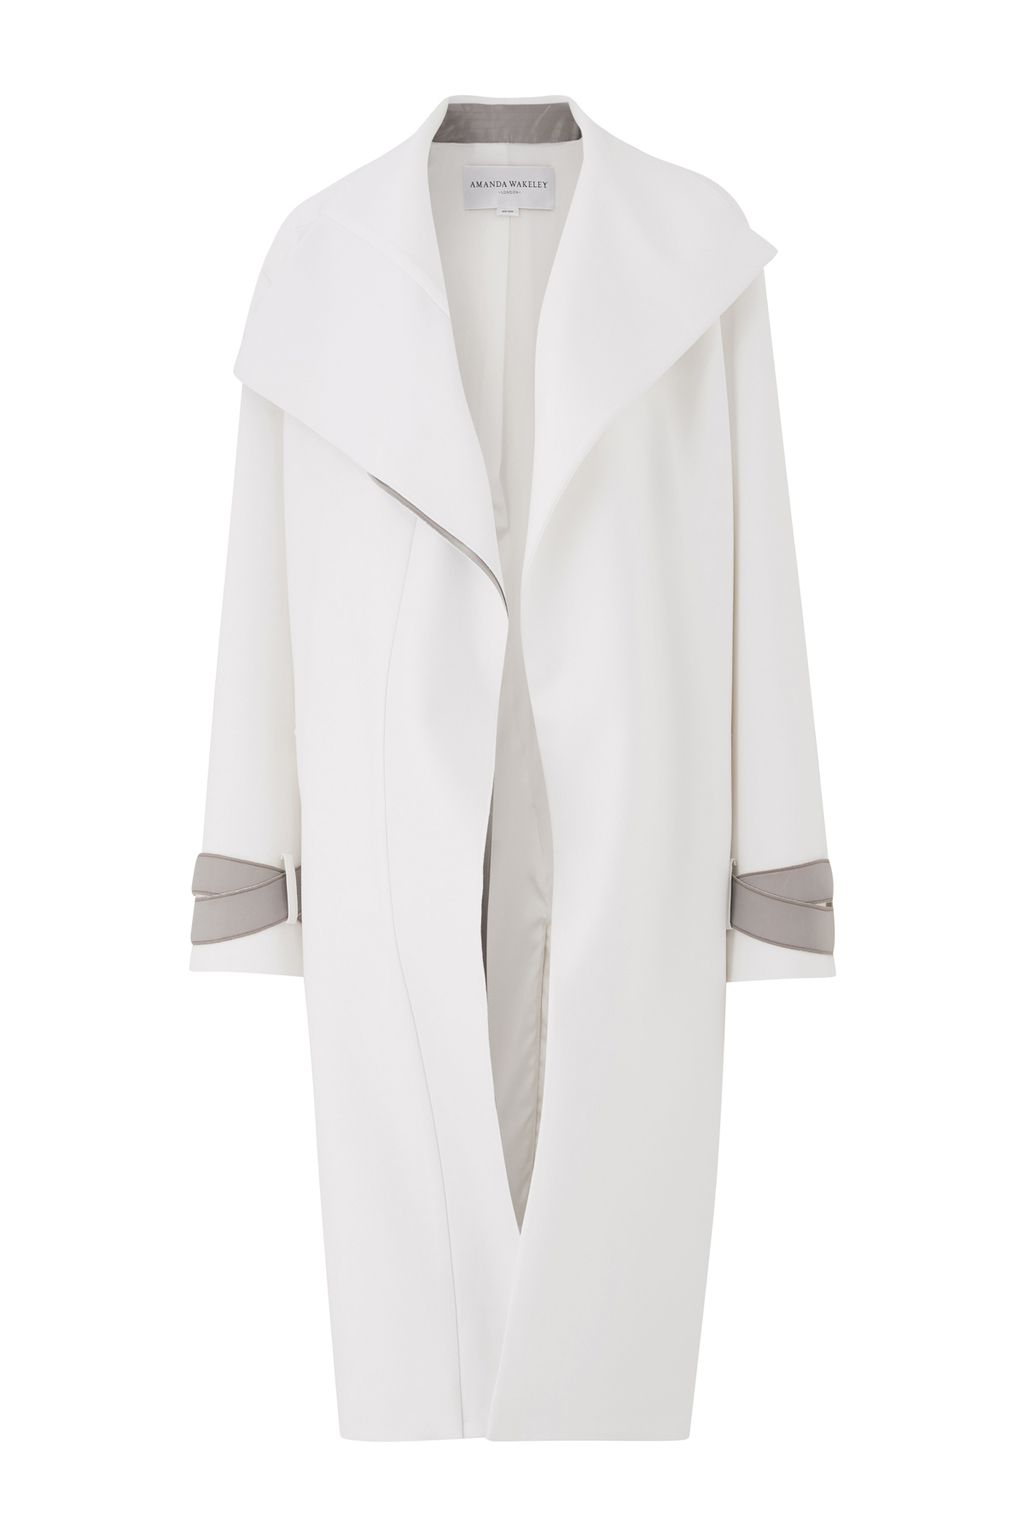 Asayii White Oversized Coat - pattern: plain; collar: shawl/waterfall; fit: loose; style: single breasted; predominant colour: white; occasions: casual; fibres: polyester/polyamide - stretch; length: below the knee; sleeve length: long sleeve; sleeve style: standard; collar break: low/open; pattern type: fabric; texture group: woven bulky/heavy; wardrobe: basic; season: a/w 2016